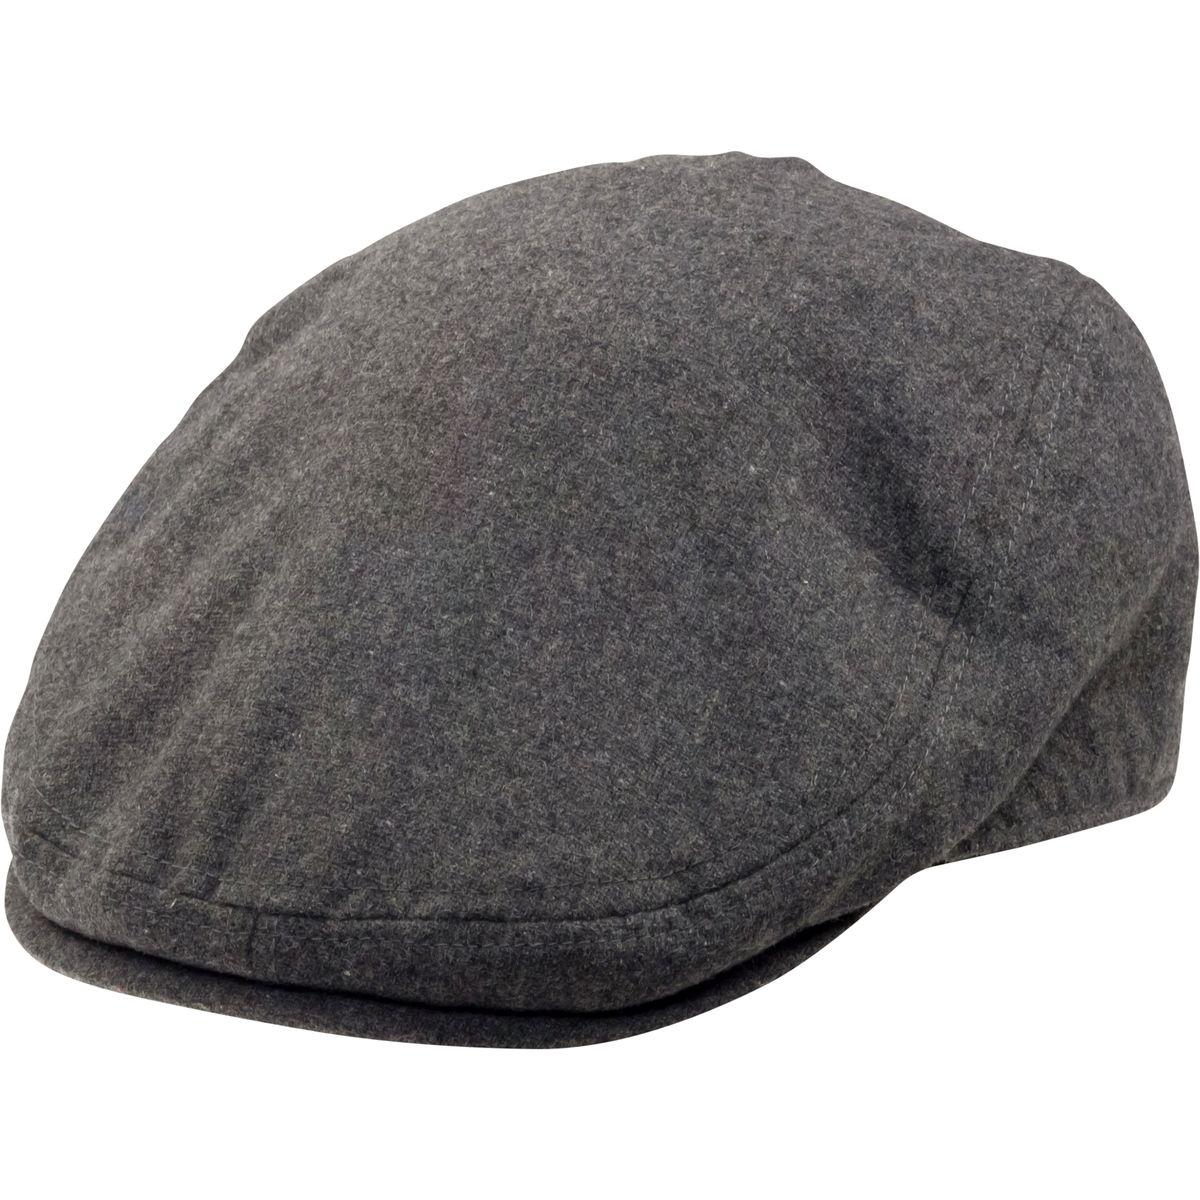 e4dc384e924 Lyst - Goorin Bros Mikey Low Profile Ivy Hat in Gray for Men